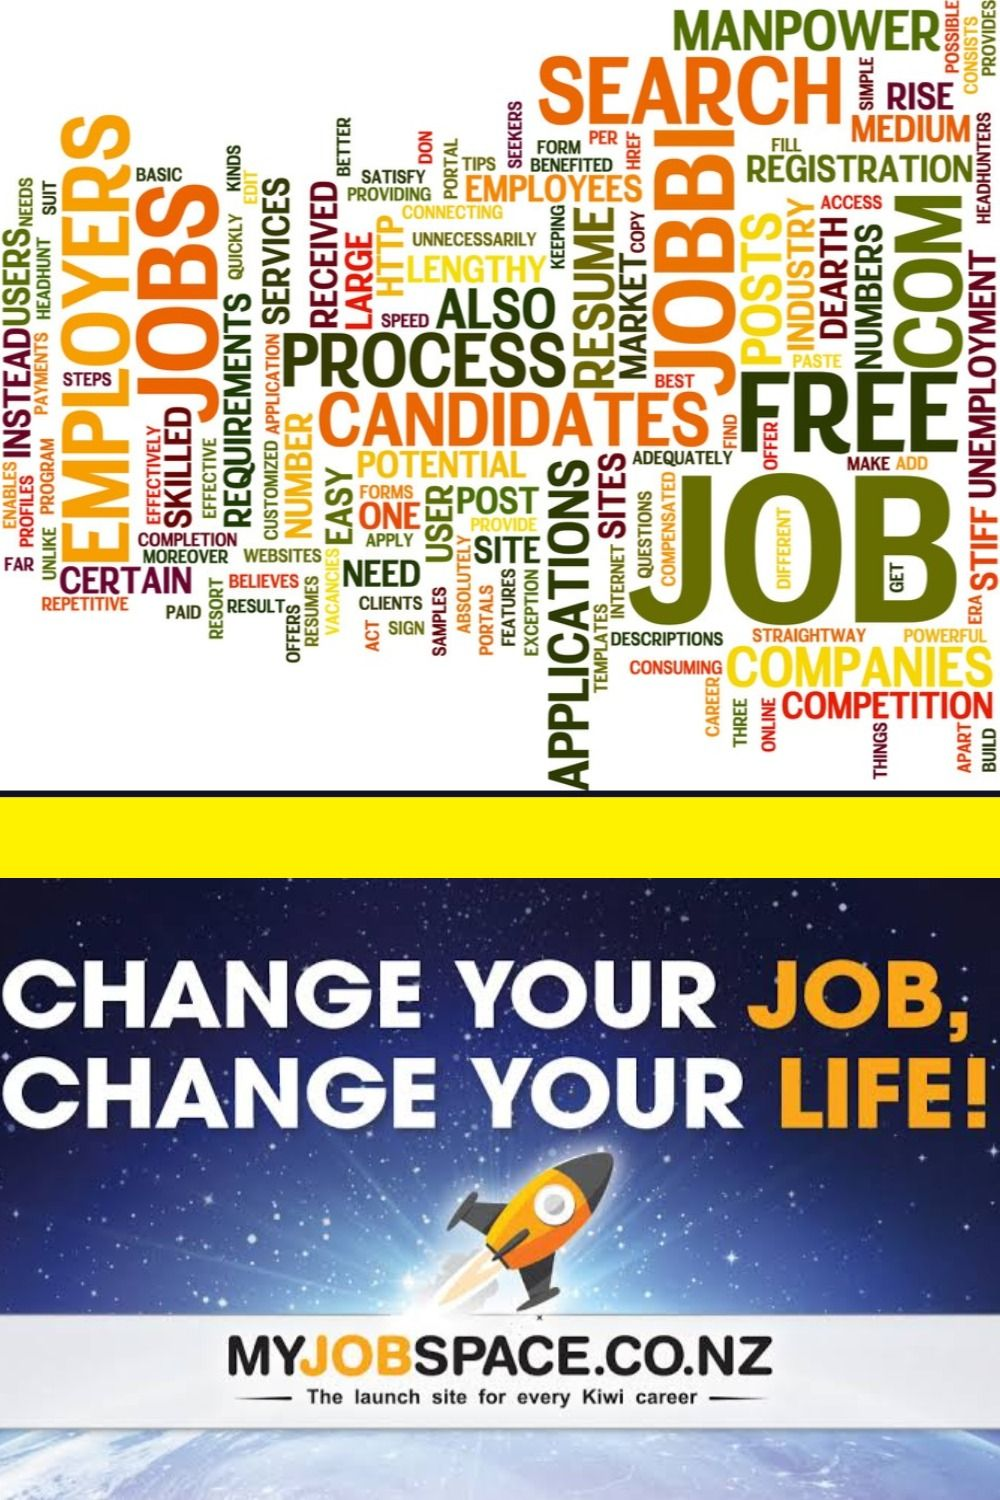 Are You Searching For Part Full Time Jobs In Northland So You